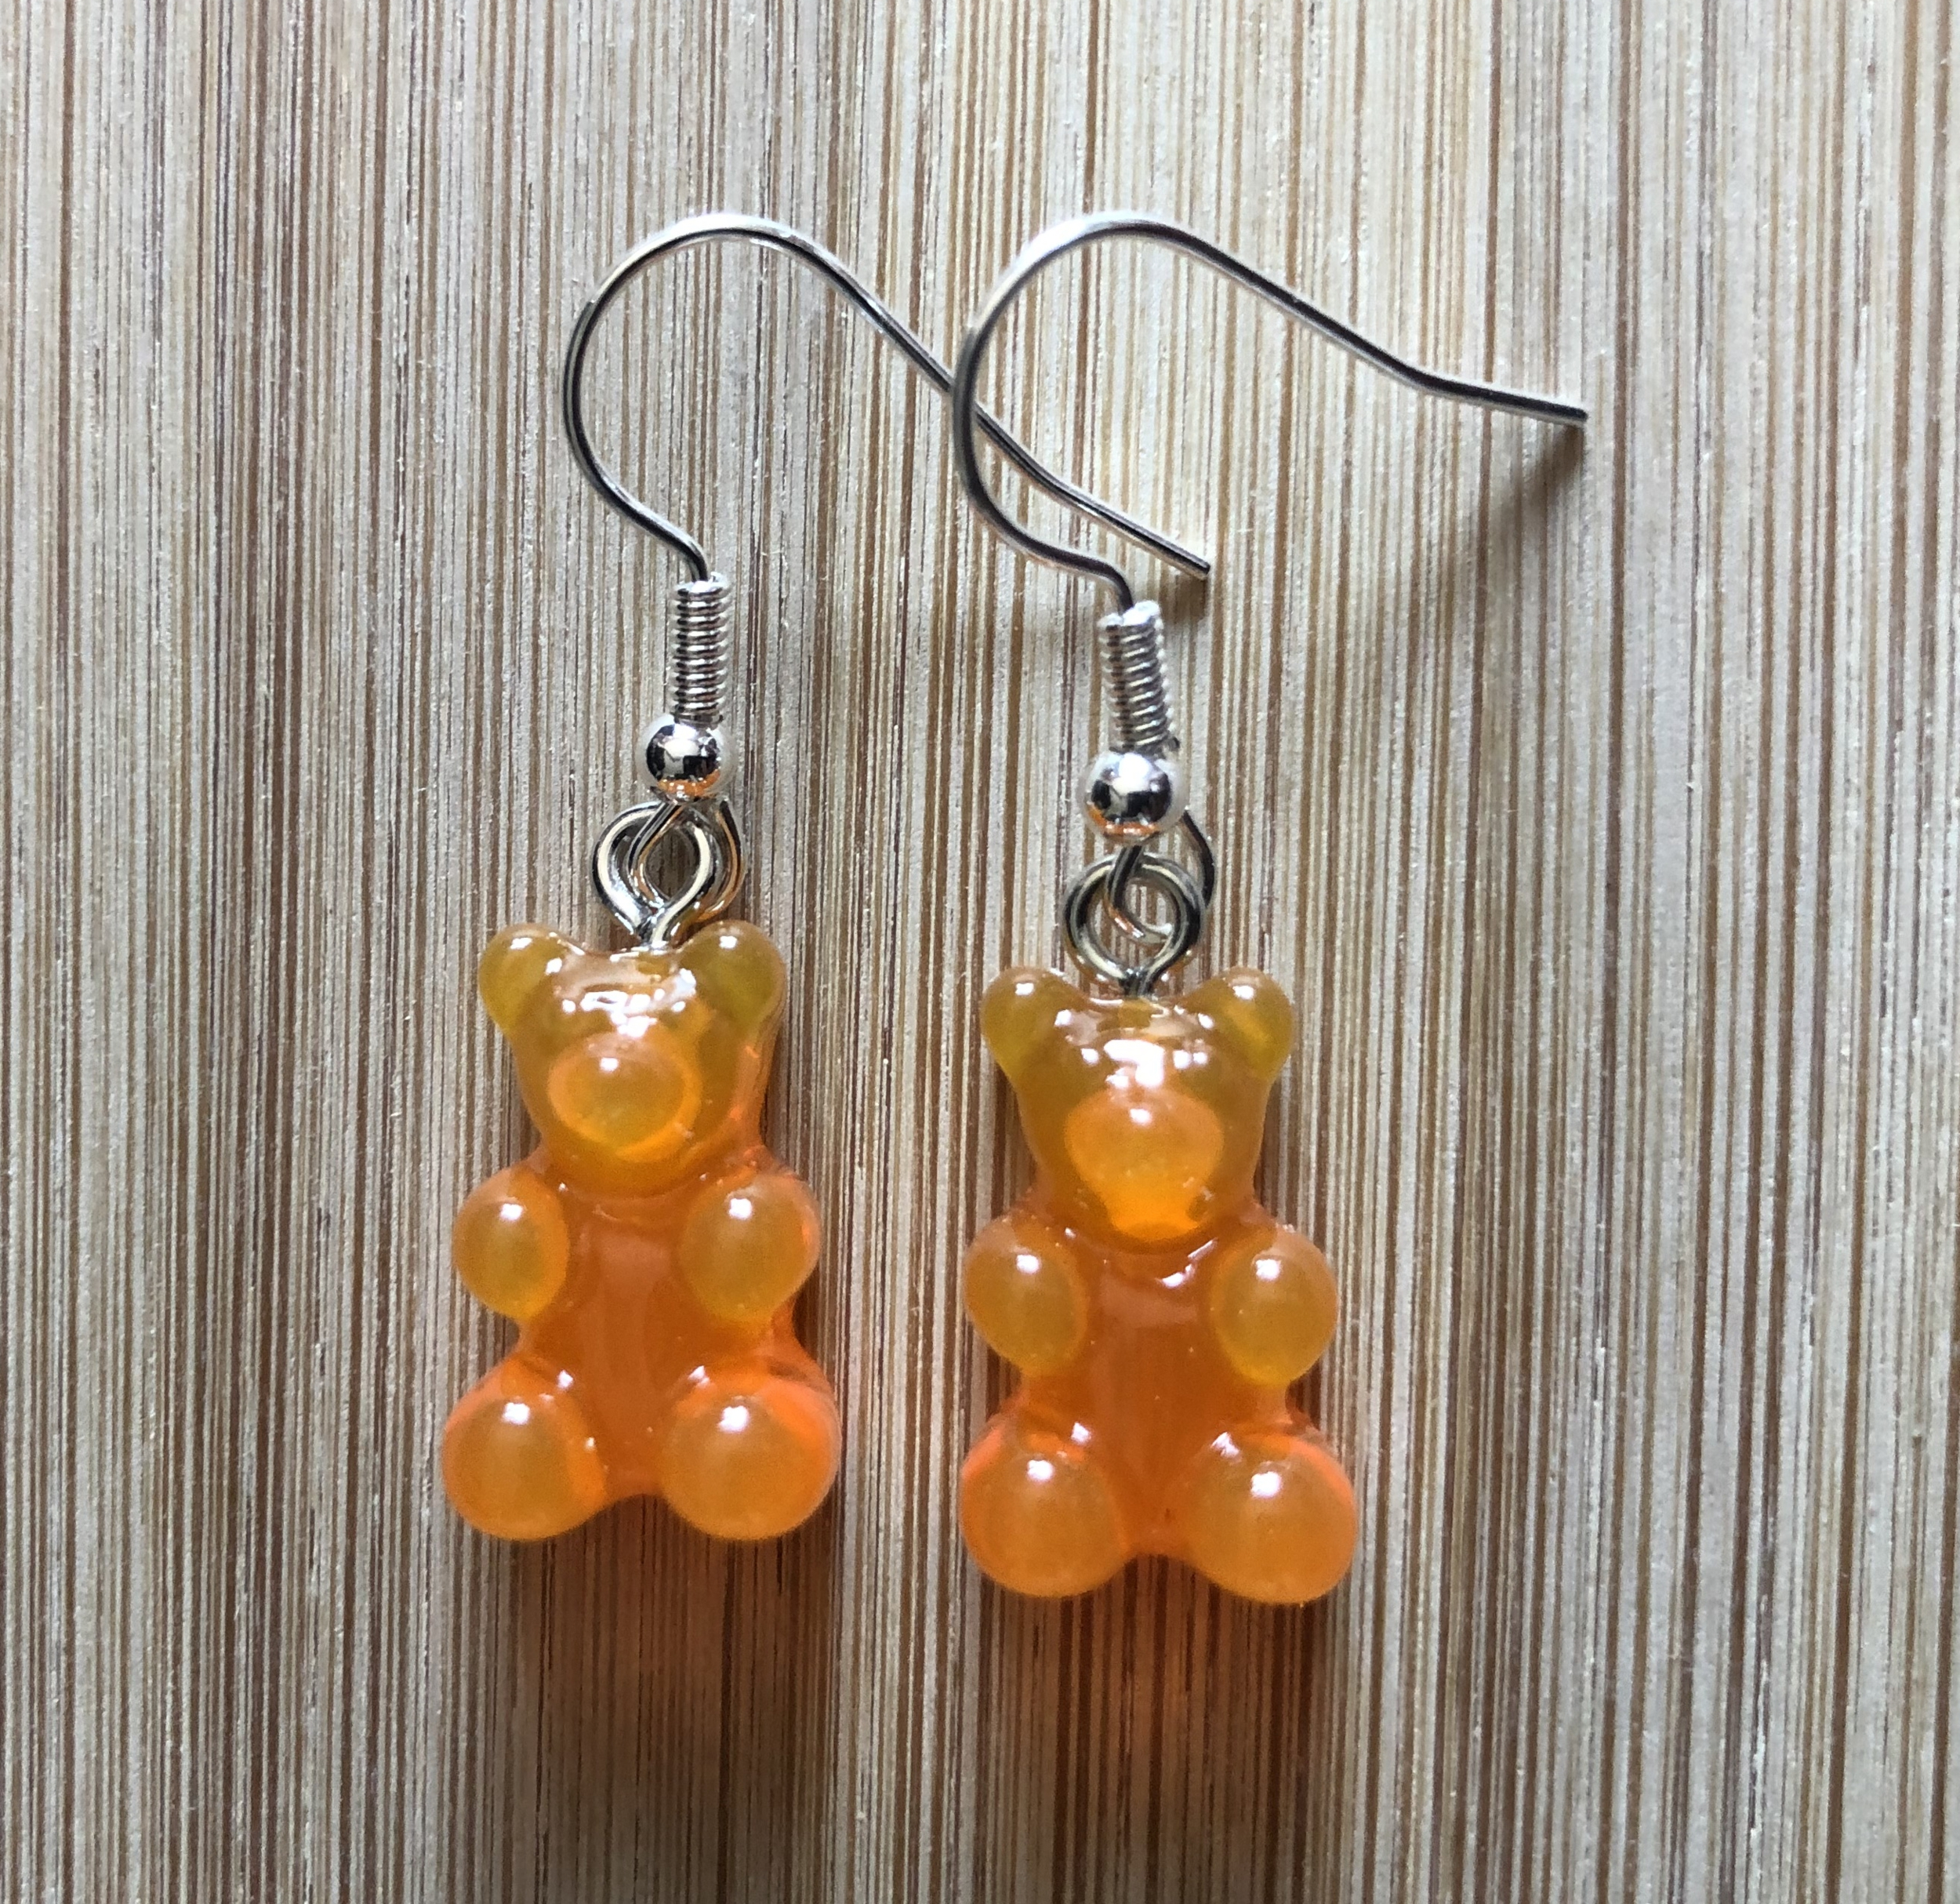 Boucles d\'oreilles ourson bonbon acidulé transparent orange - Angel shop